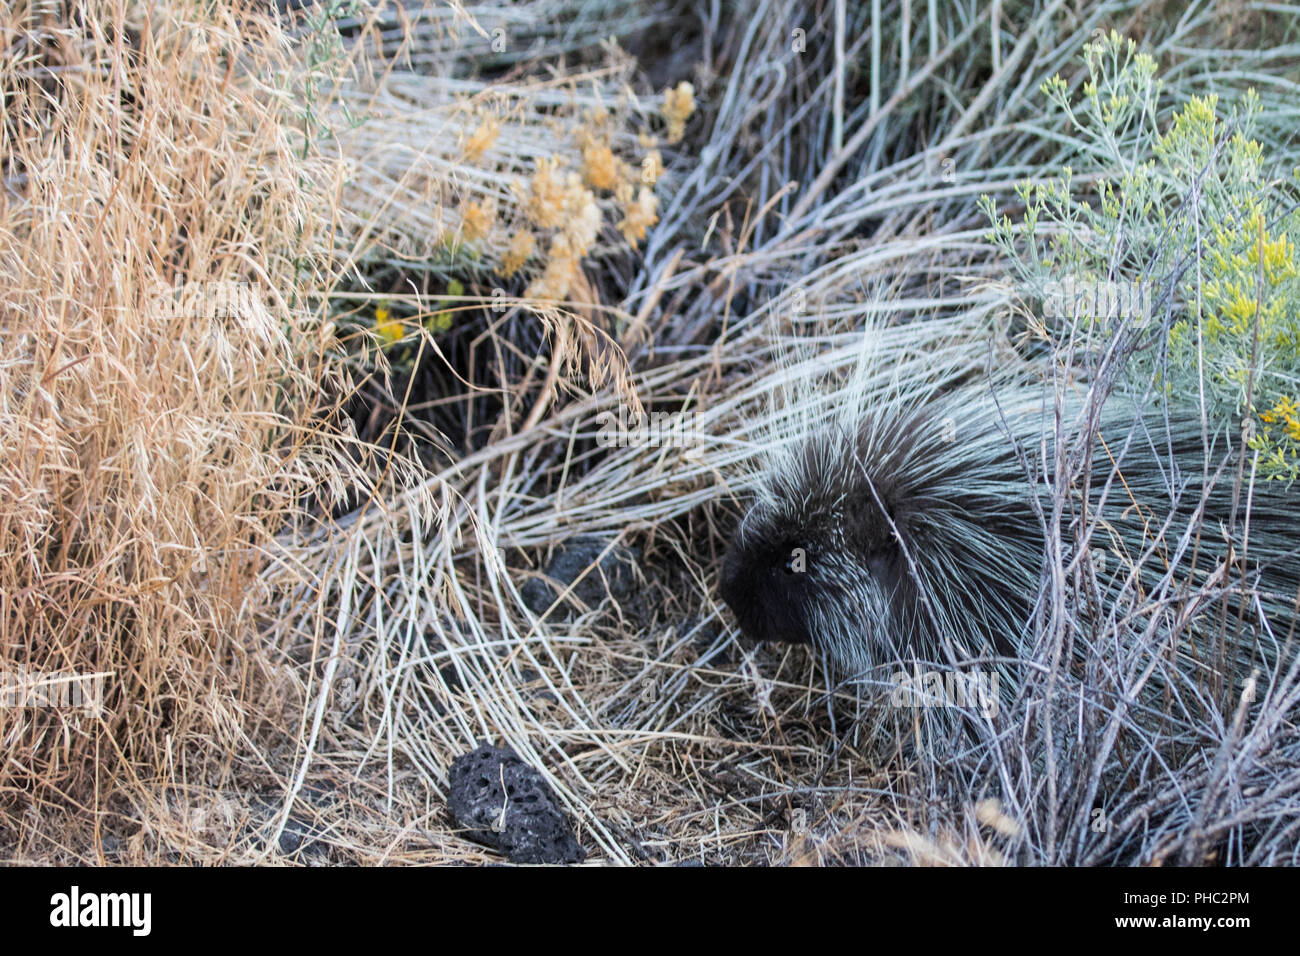 A young porcupine attempts to blend in with the tall, dry grass. Stock Photo